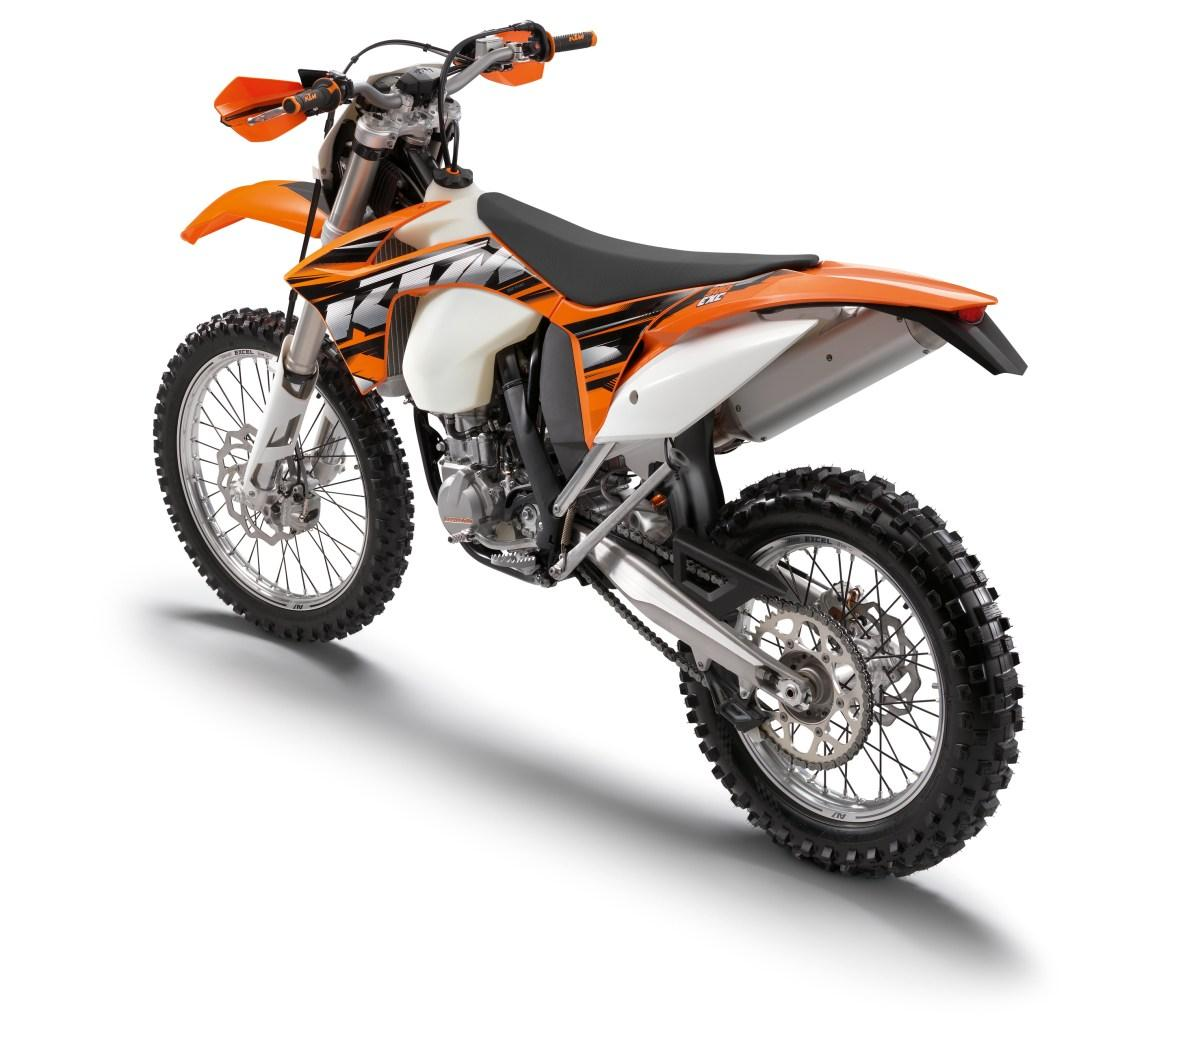 ktm exc 2013 enduro motorrad fotos motorrad bilder. Black Bedroom Furniture Sets. Home Design Ideas